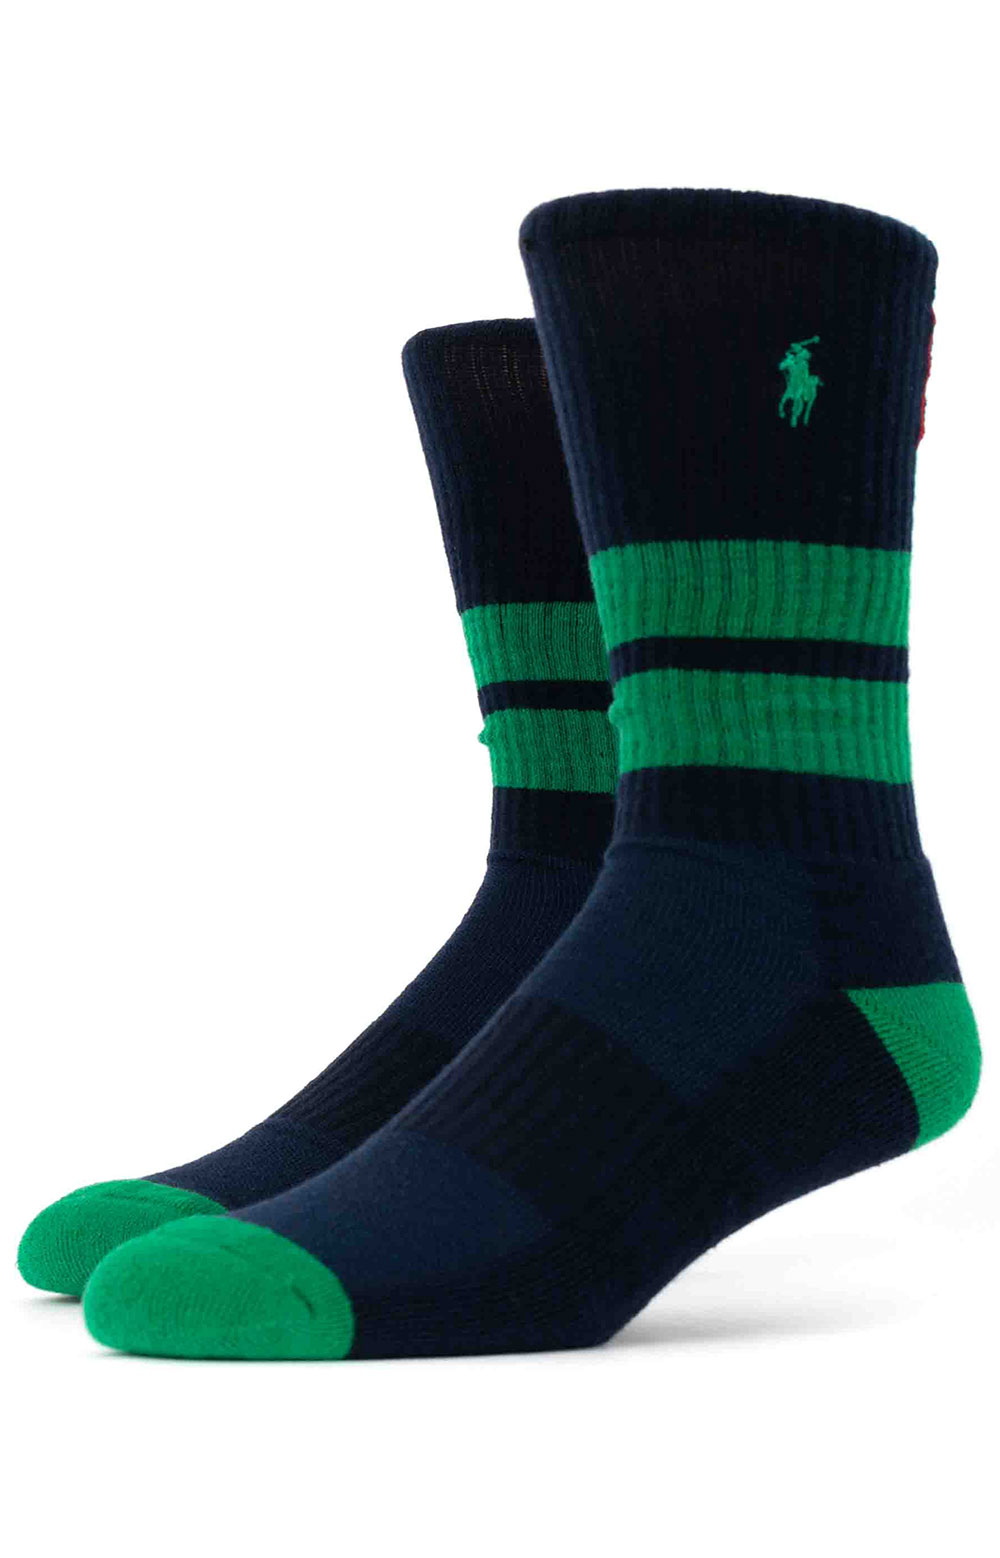 Colorblock Cushioned Crew Socks - 6 Pack 13